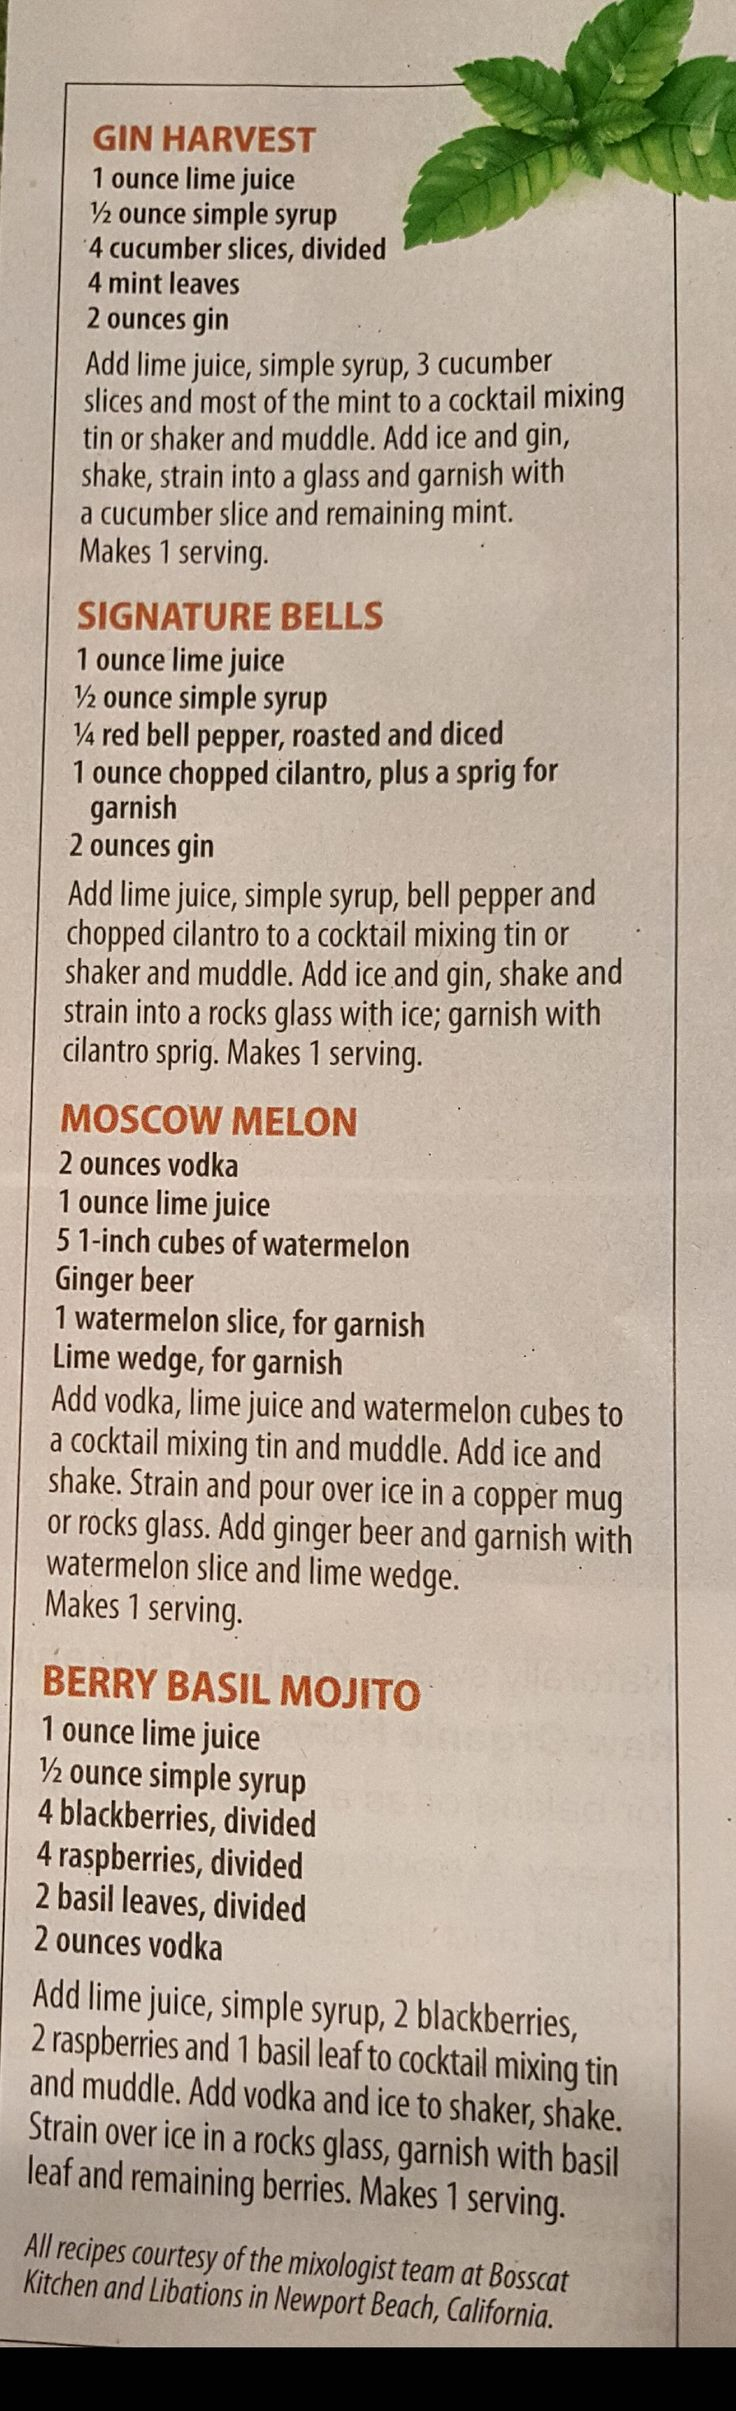 Gin Harvest. Signature  Bells.  Moscow Melon. Berry Basil Mojito. From the Costco Connection magazine